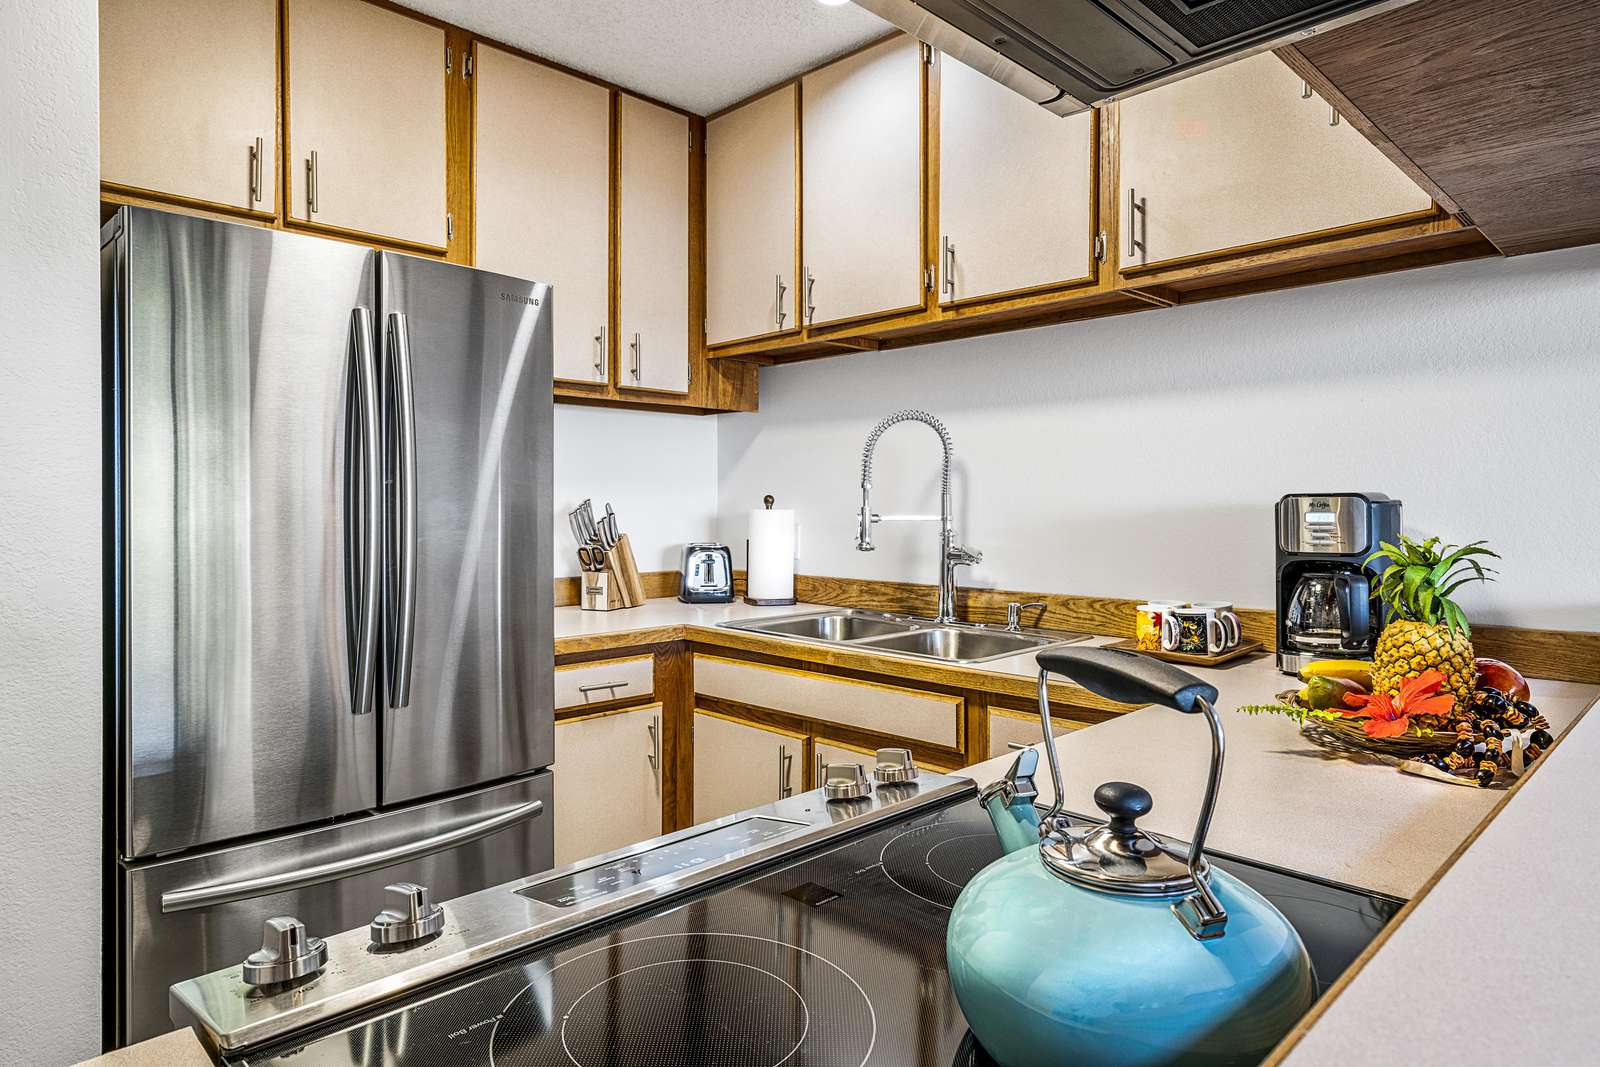 Kitchen has everything needed for your stay